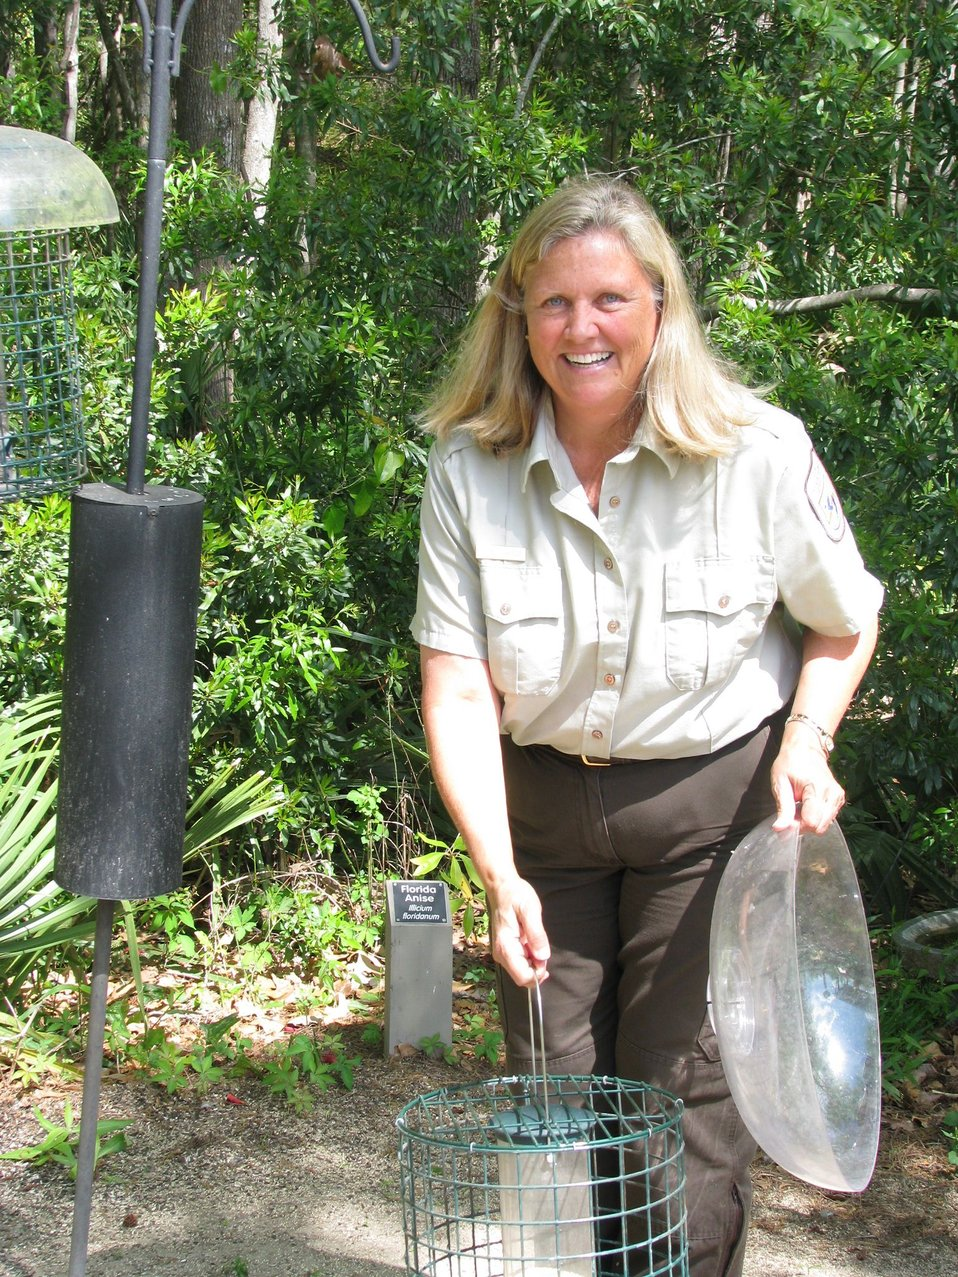 Jane Griess at Savannah Wildlife Refuge, 2